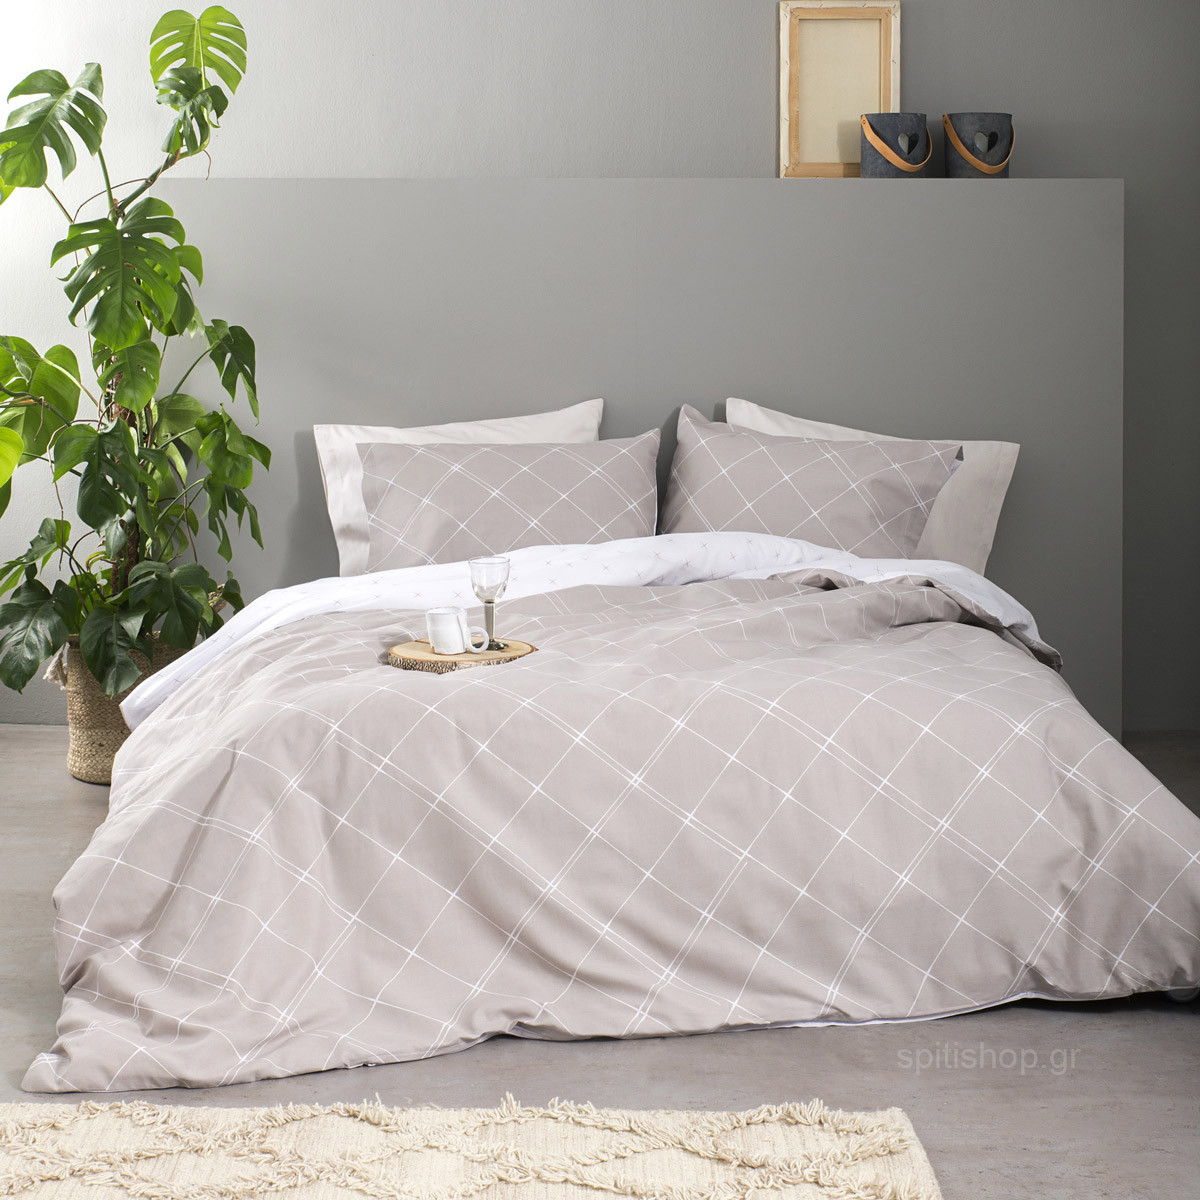 Σεντόνια King Size (Σετ) Nima Bed Linen Azzora Earth